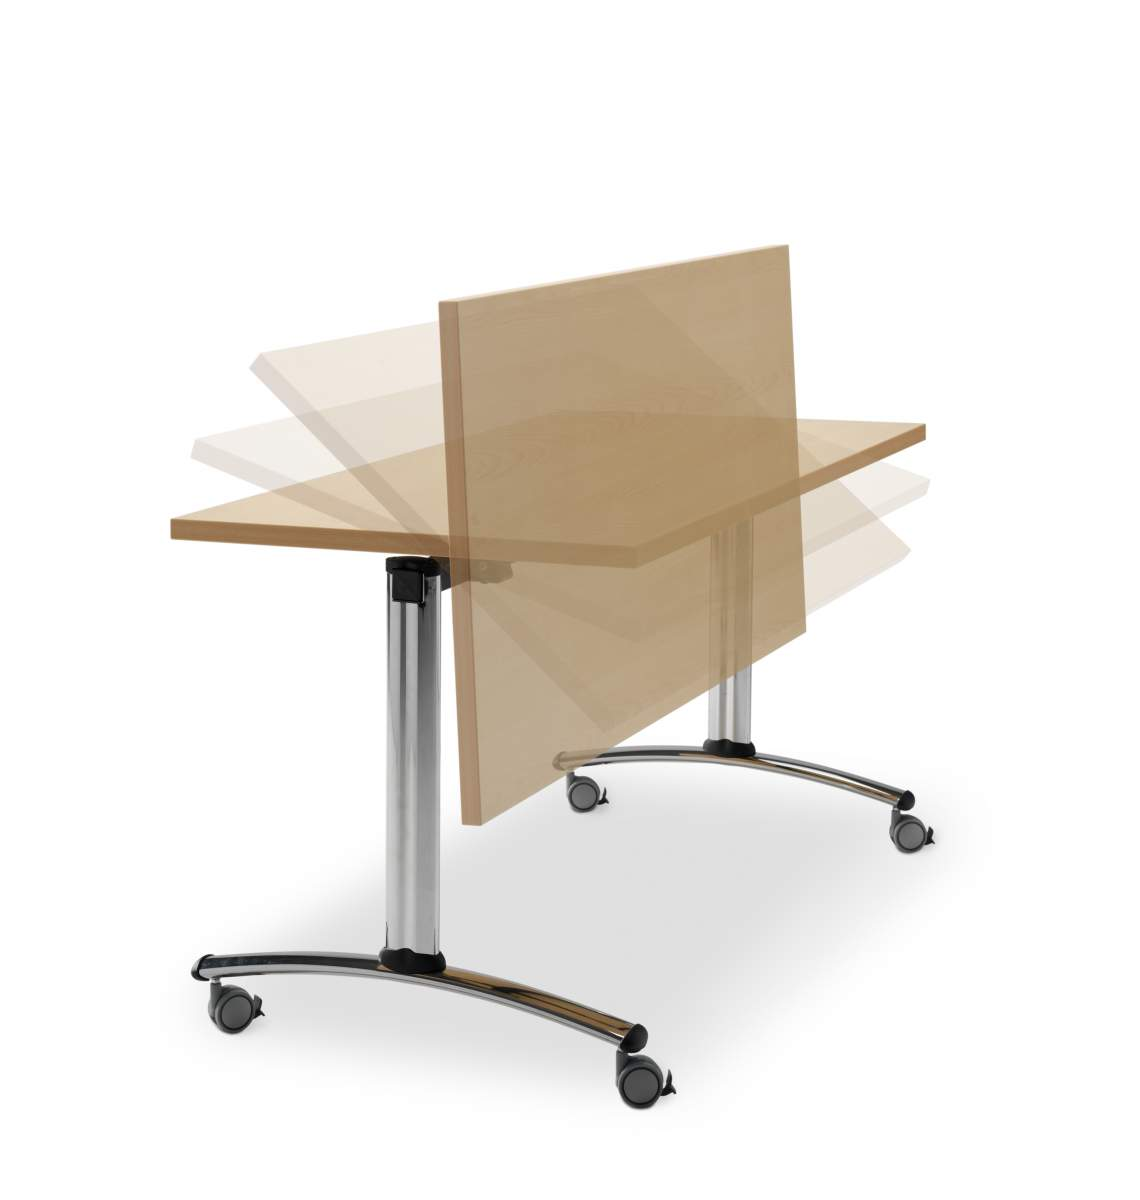 Table de r union avec plateau rabattable mobilier de for Mobilier bureau 64